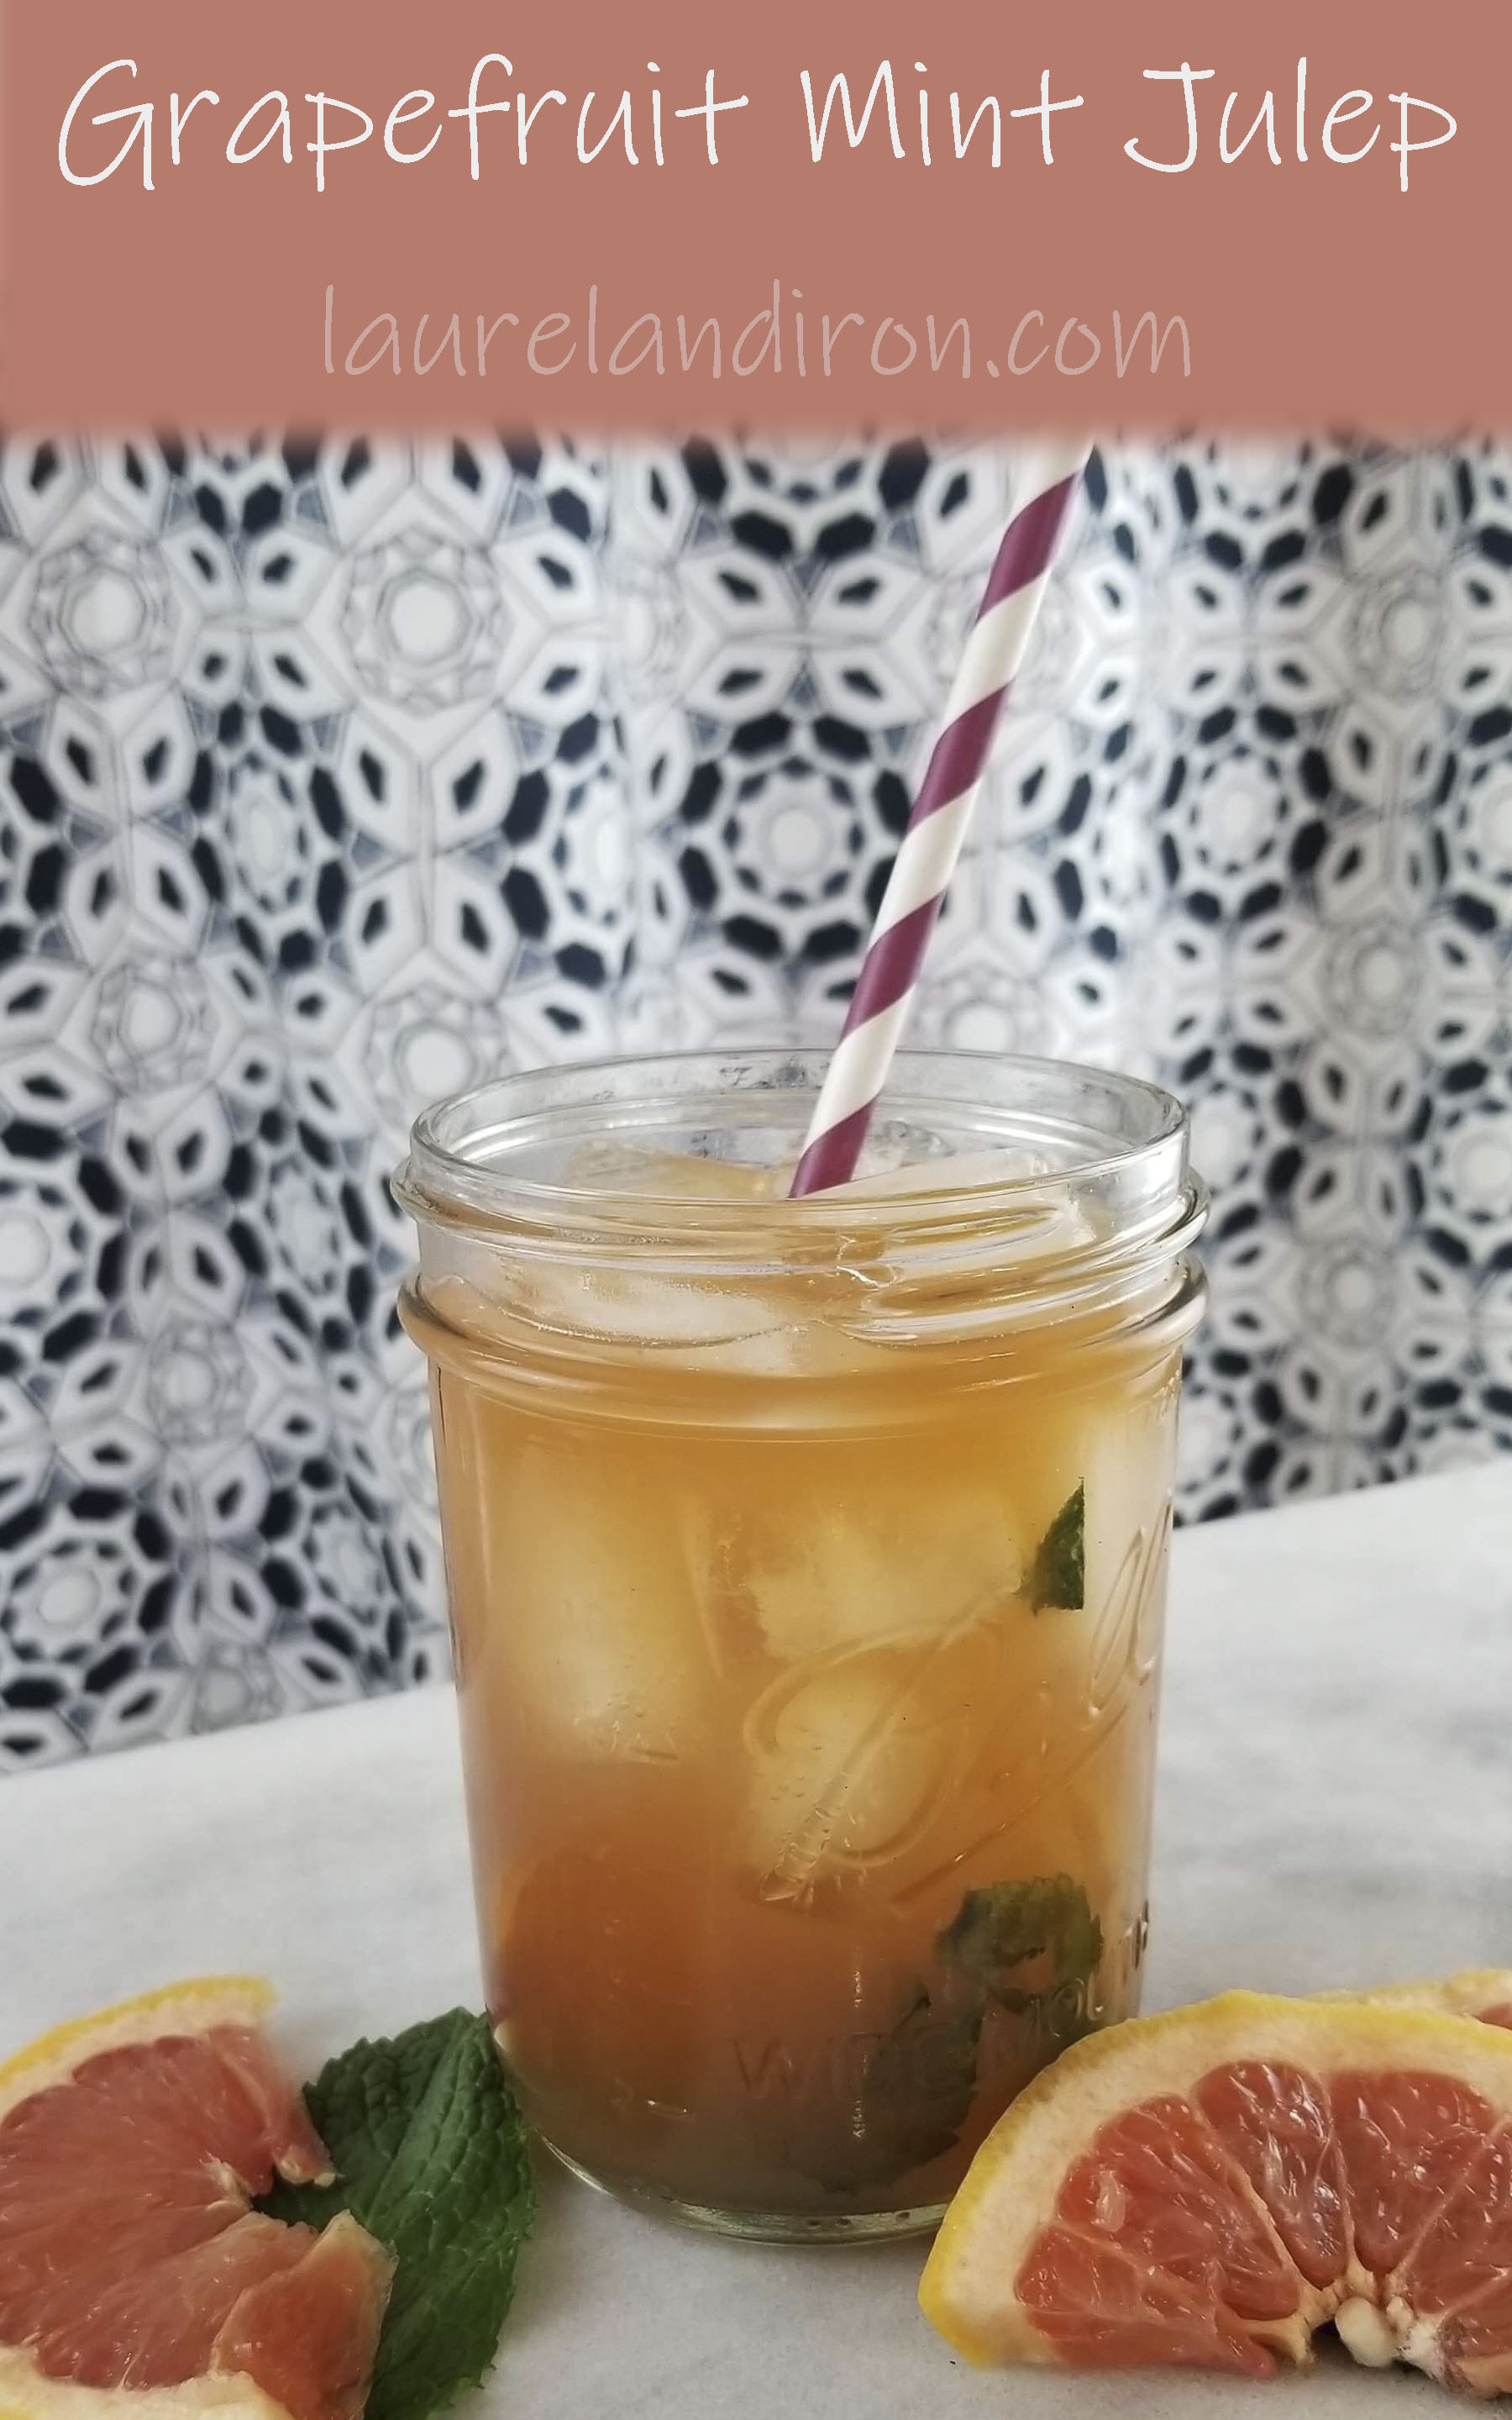 Grapefruit Mint Julep - the perfect drink for a spring brunch | Laurel and Iron